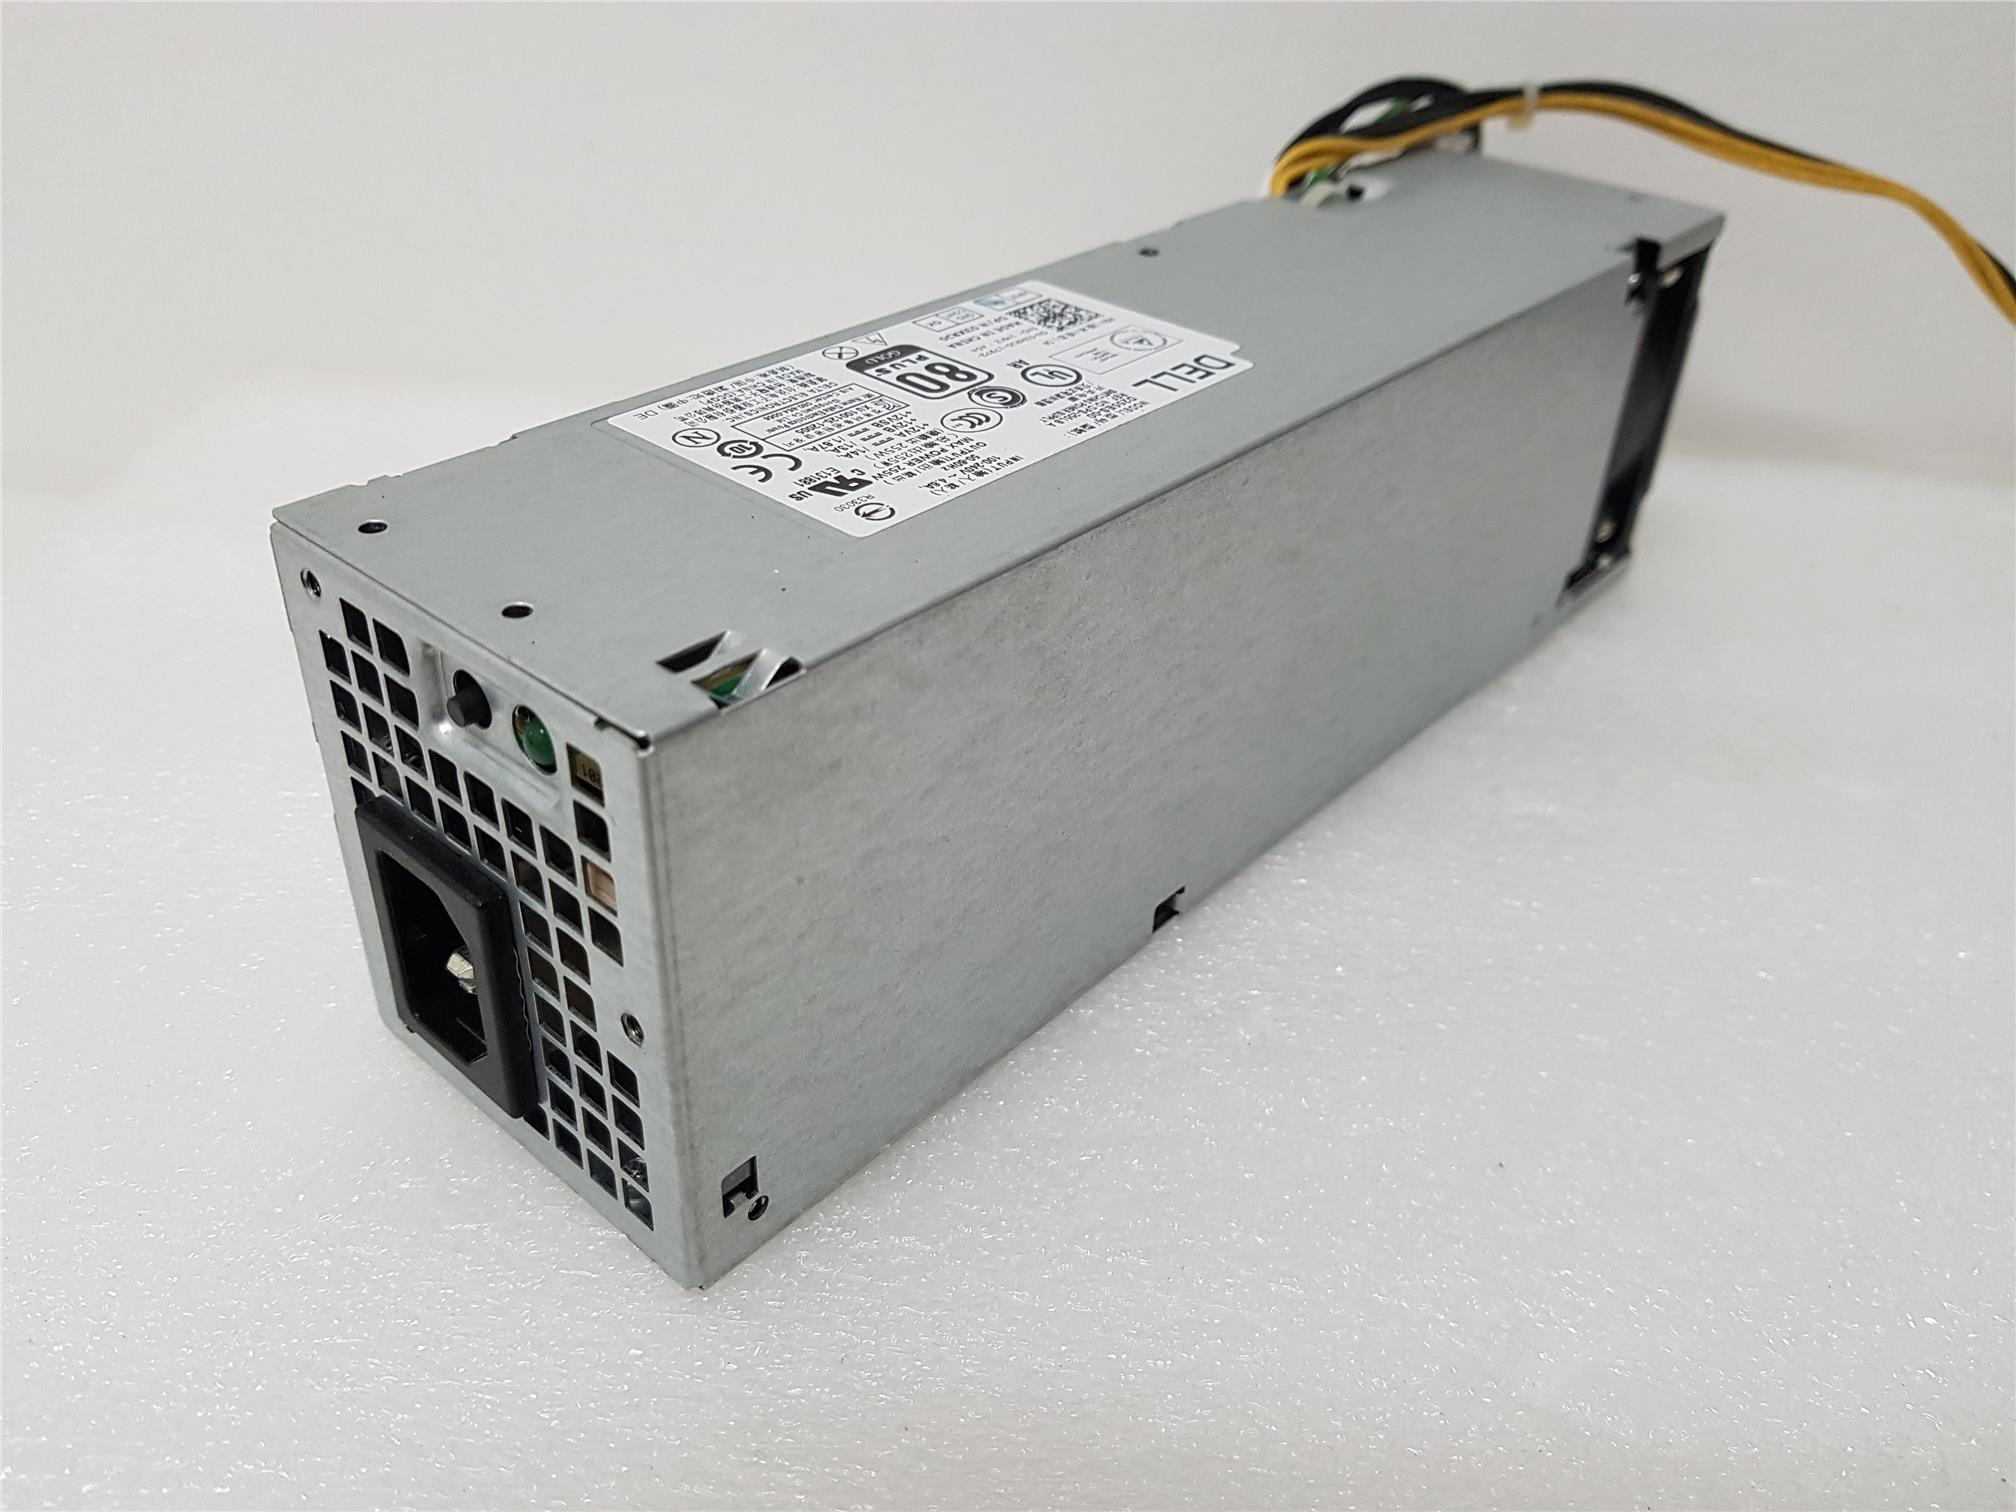 Dell Optiplex 3020 SFF 255W Power Supply FP16X T4GWM AC255AS-00 (REF)